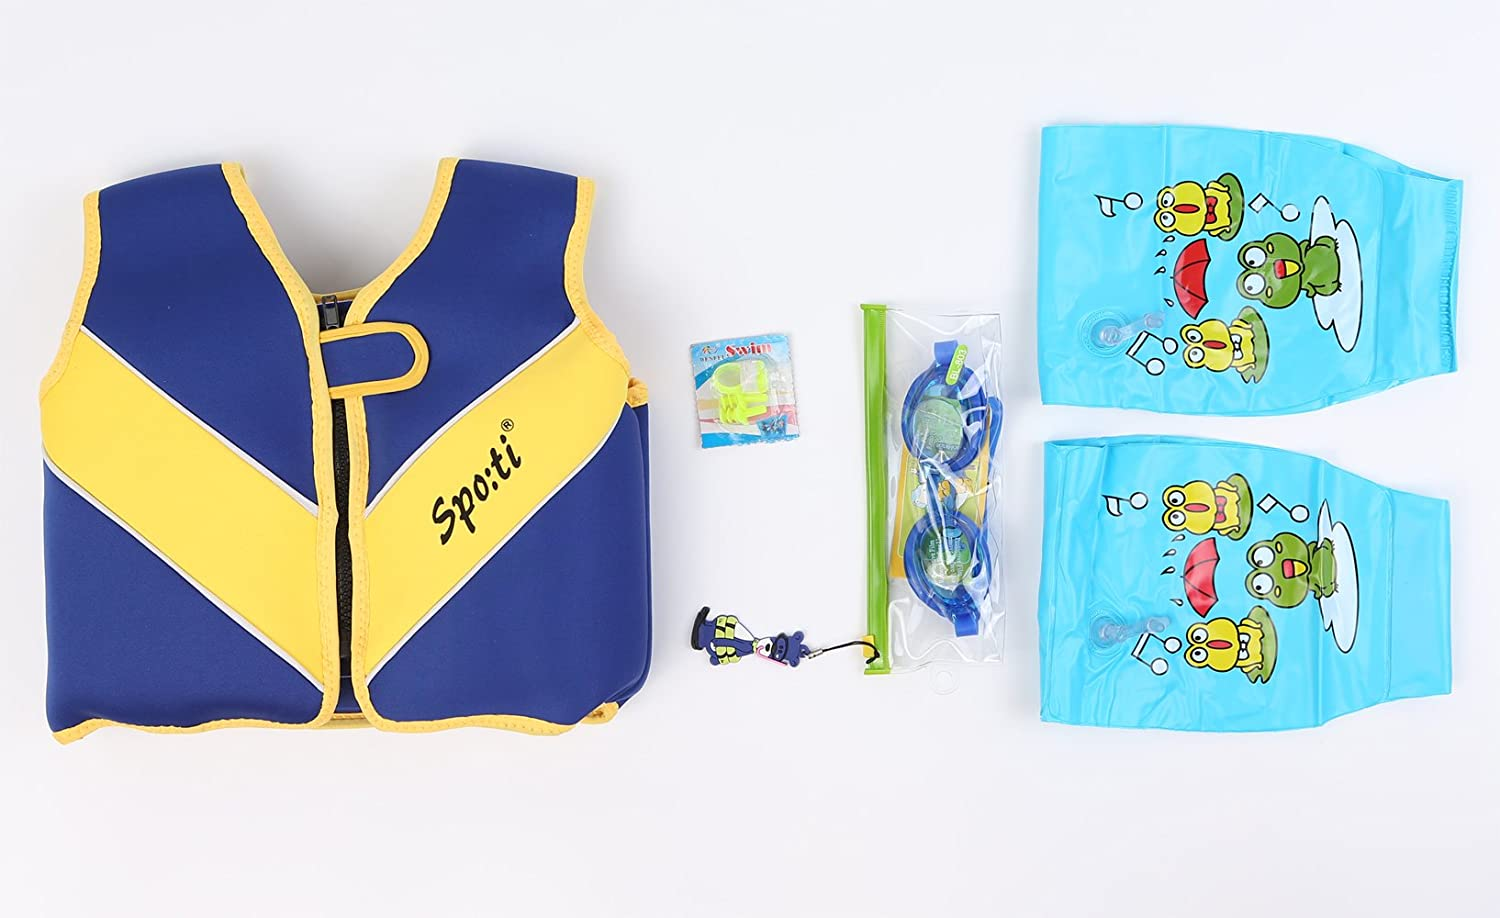 Titop Infant Baby Life Jacket Children Life Vest for for 22-33 Lbs+Swimming Glasses /& Swimming Floatation Sleeves /& Swimming Nose Protector/& Belt-line Ear Plugs Navy Blue Small